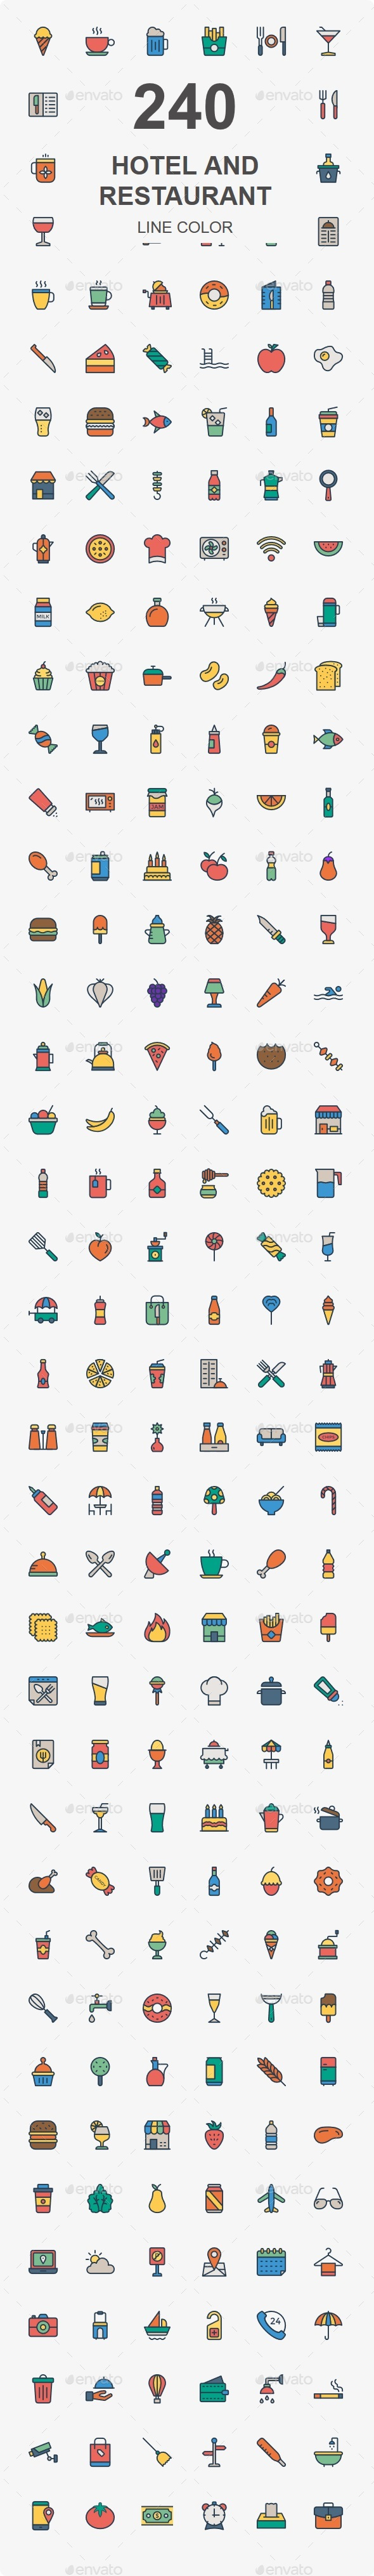 200+ Hotel and Restaurant color icon - Business Icons